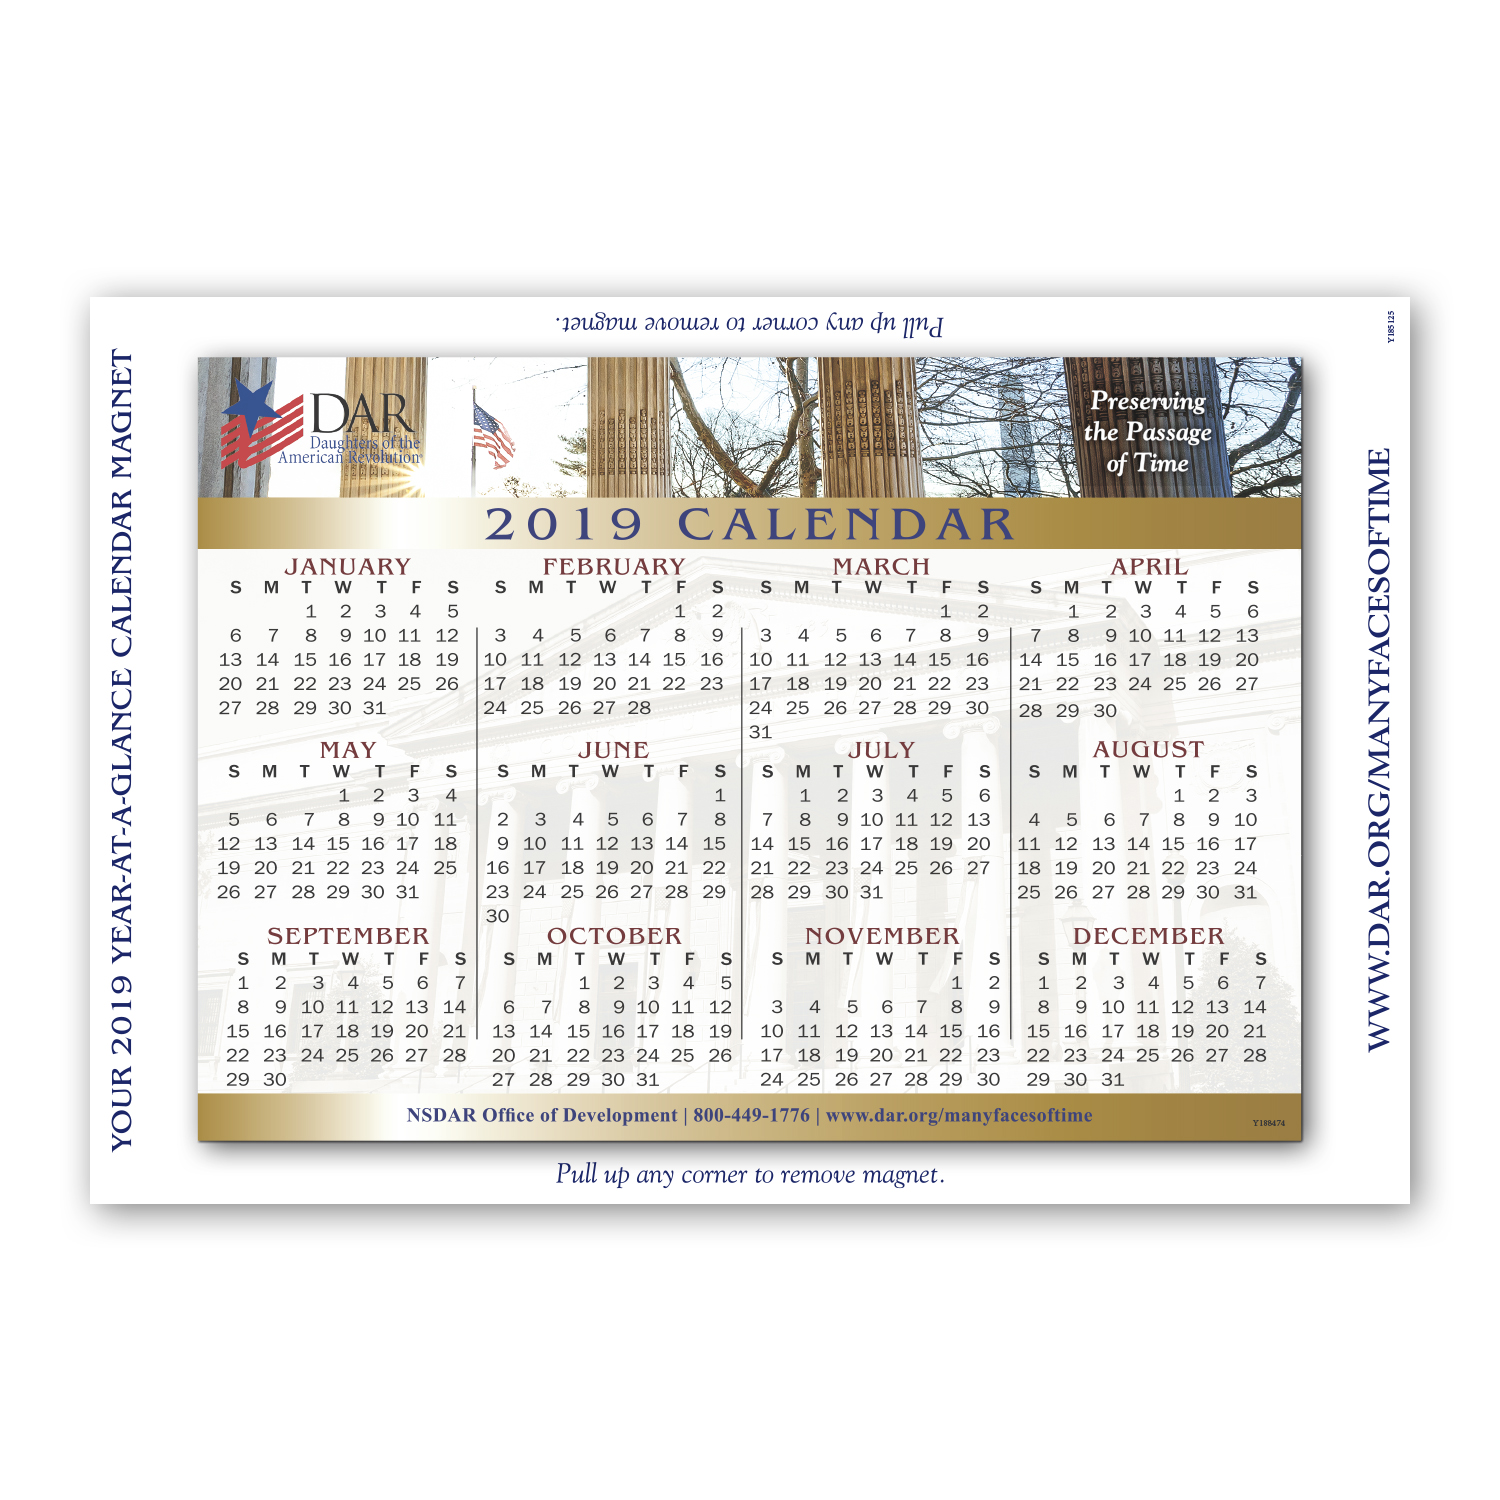 """• RMCST Romance Card, 5.5"""" x 8"""", 10 pt. with CF32S Custom Magnet, 4.75"""" x 6.6875"""", .020 thickness  • 75,000 calendar magnets were tipped onto card and mailed out to clients/donors."""